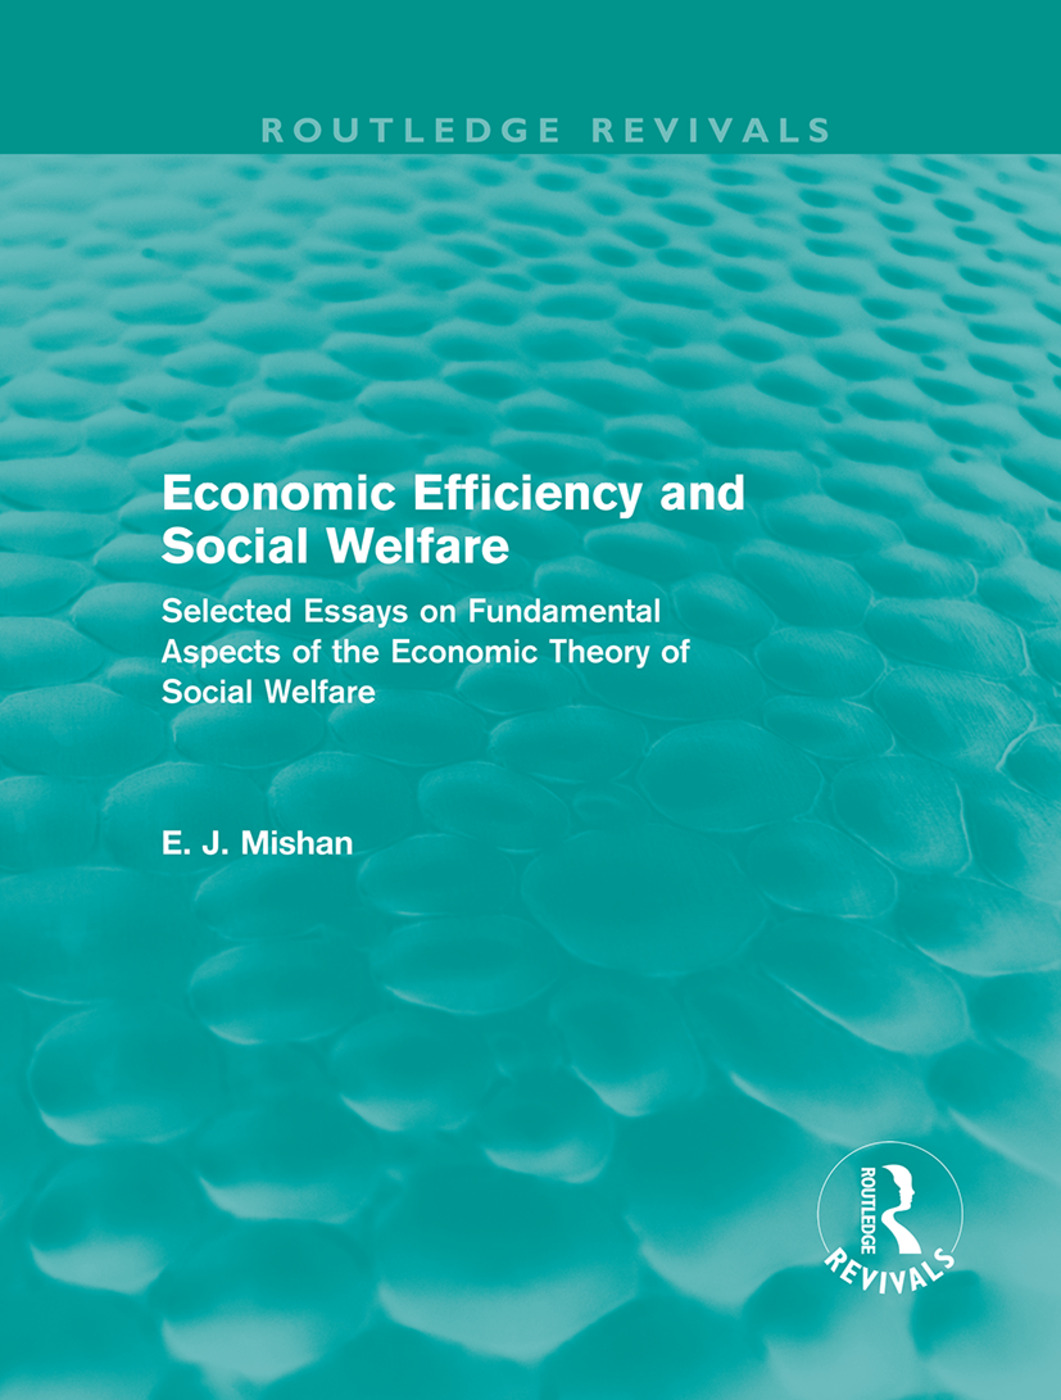 Economic Efficiency and Social Welfare (Routledge Revivals): Selected Essays on Fundamental Aspects of the Economic Theory of Social Welfare (Hardback) book cover